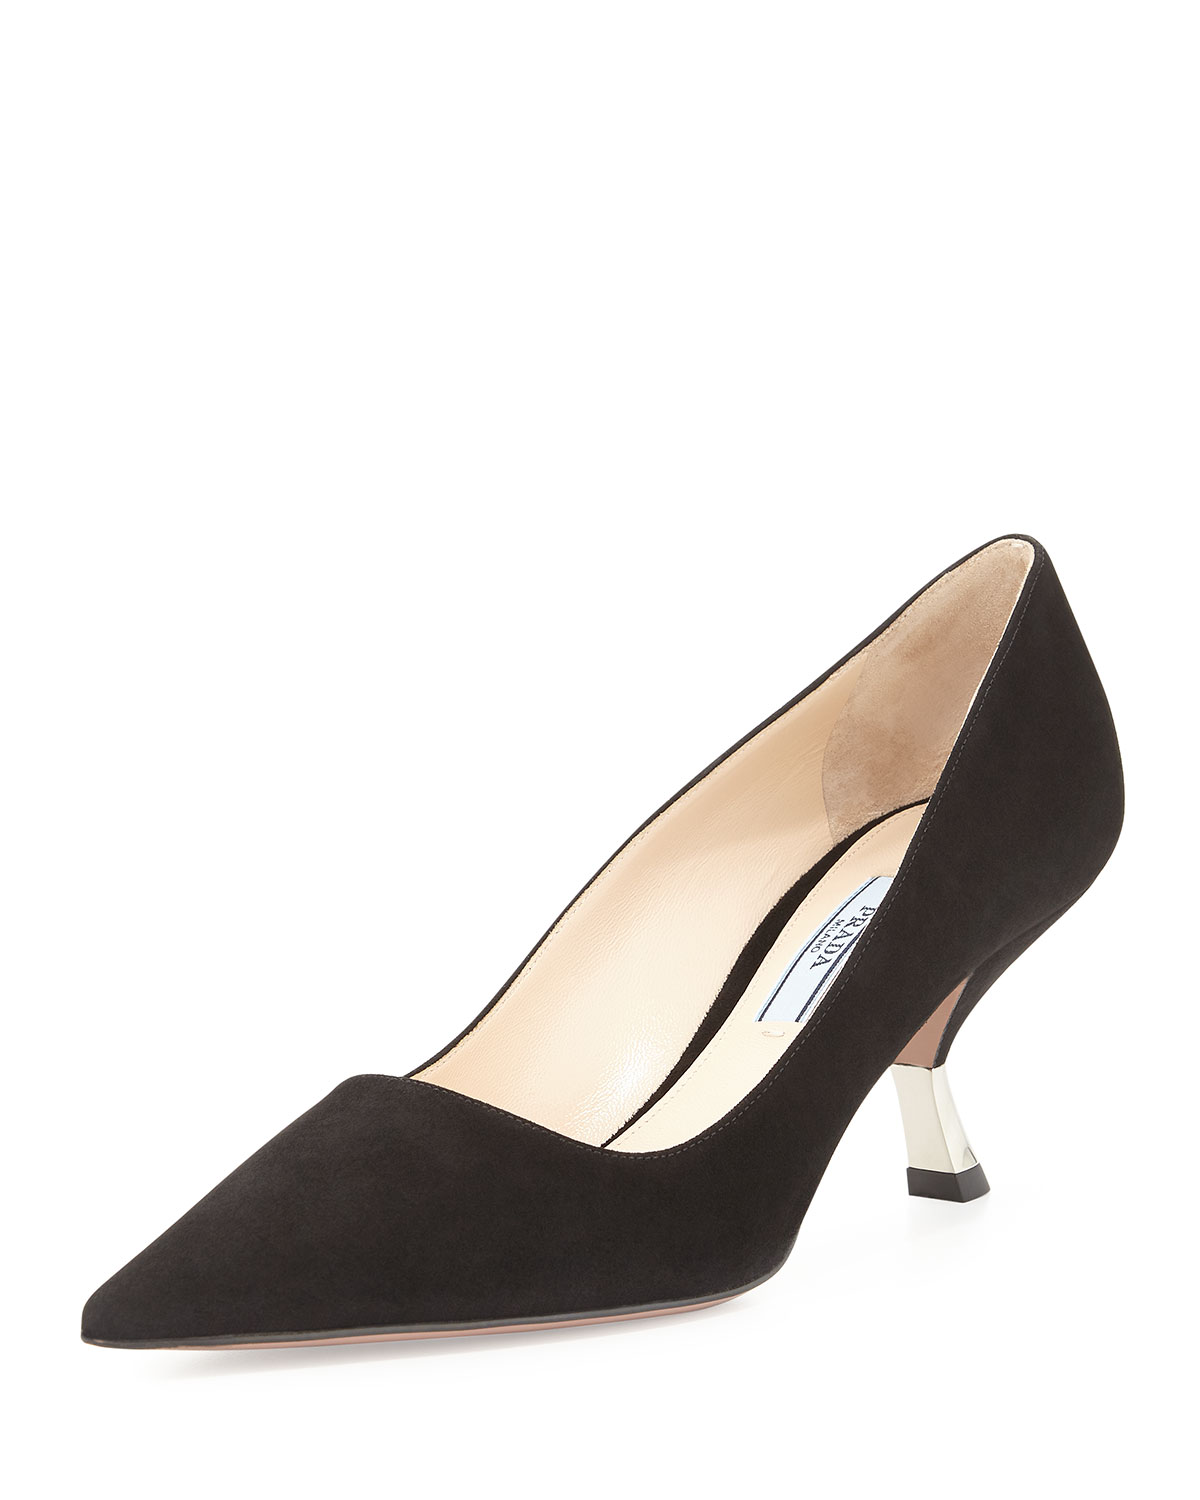 a0afb53bc0f9 Prada Suede Comma-Heel Pointed-Toe Pumps